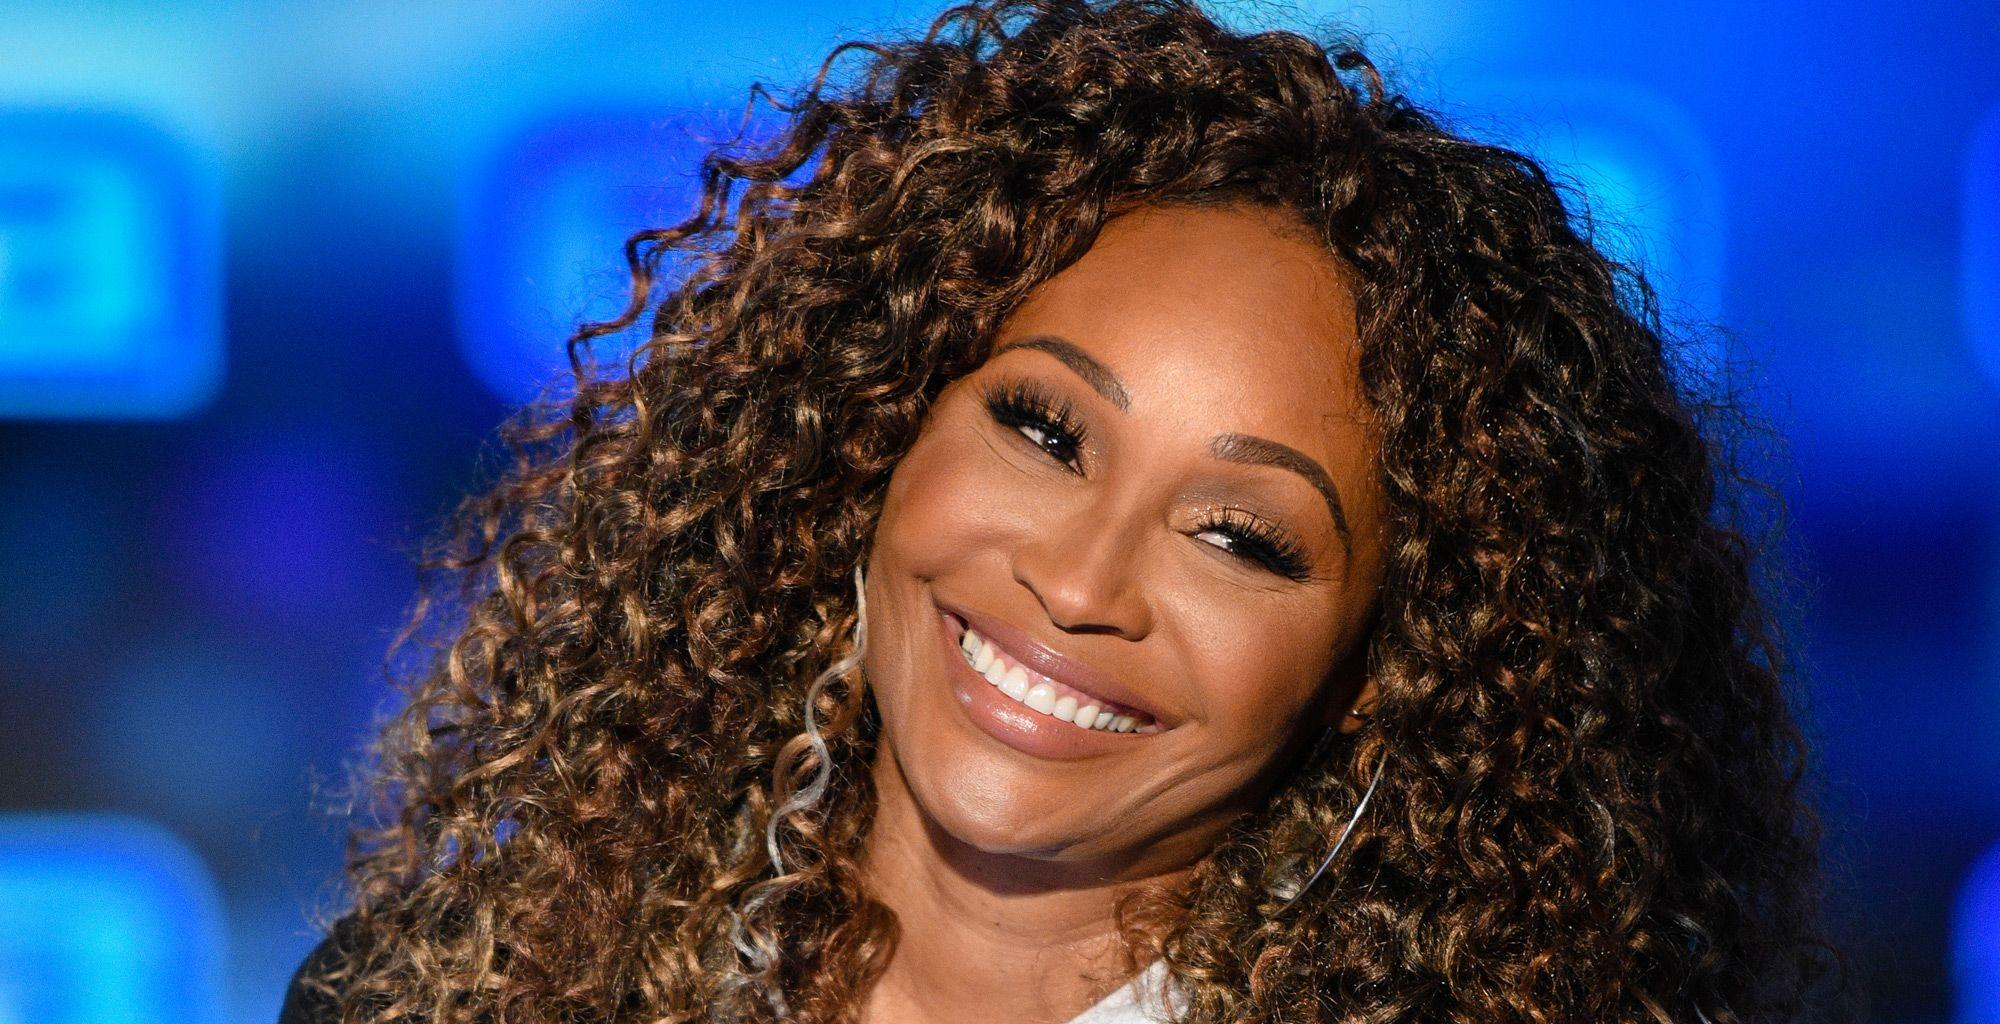 Cynthia Bailey Shares A Clip From RHOA's Behind The Scenes - Check Out Her Confessional Look